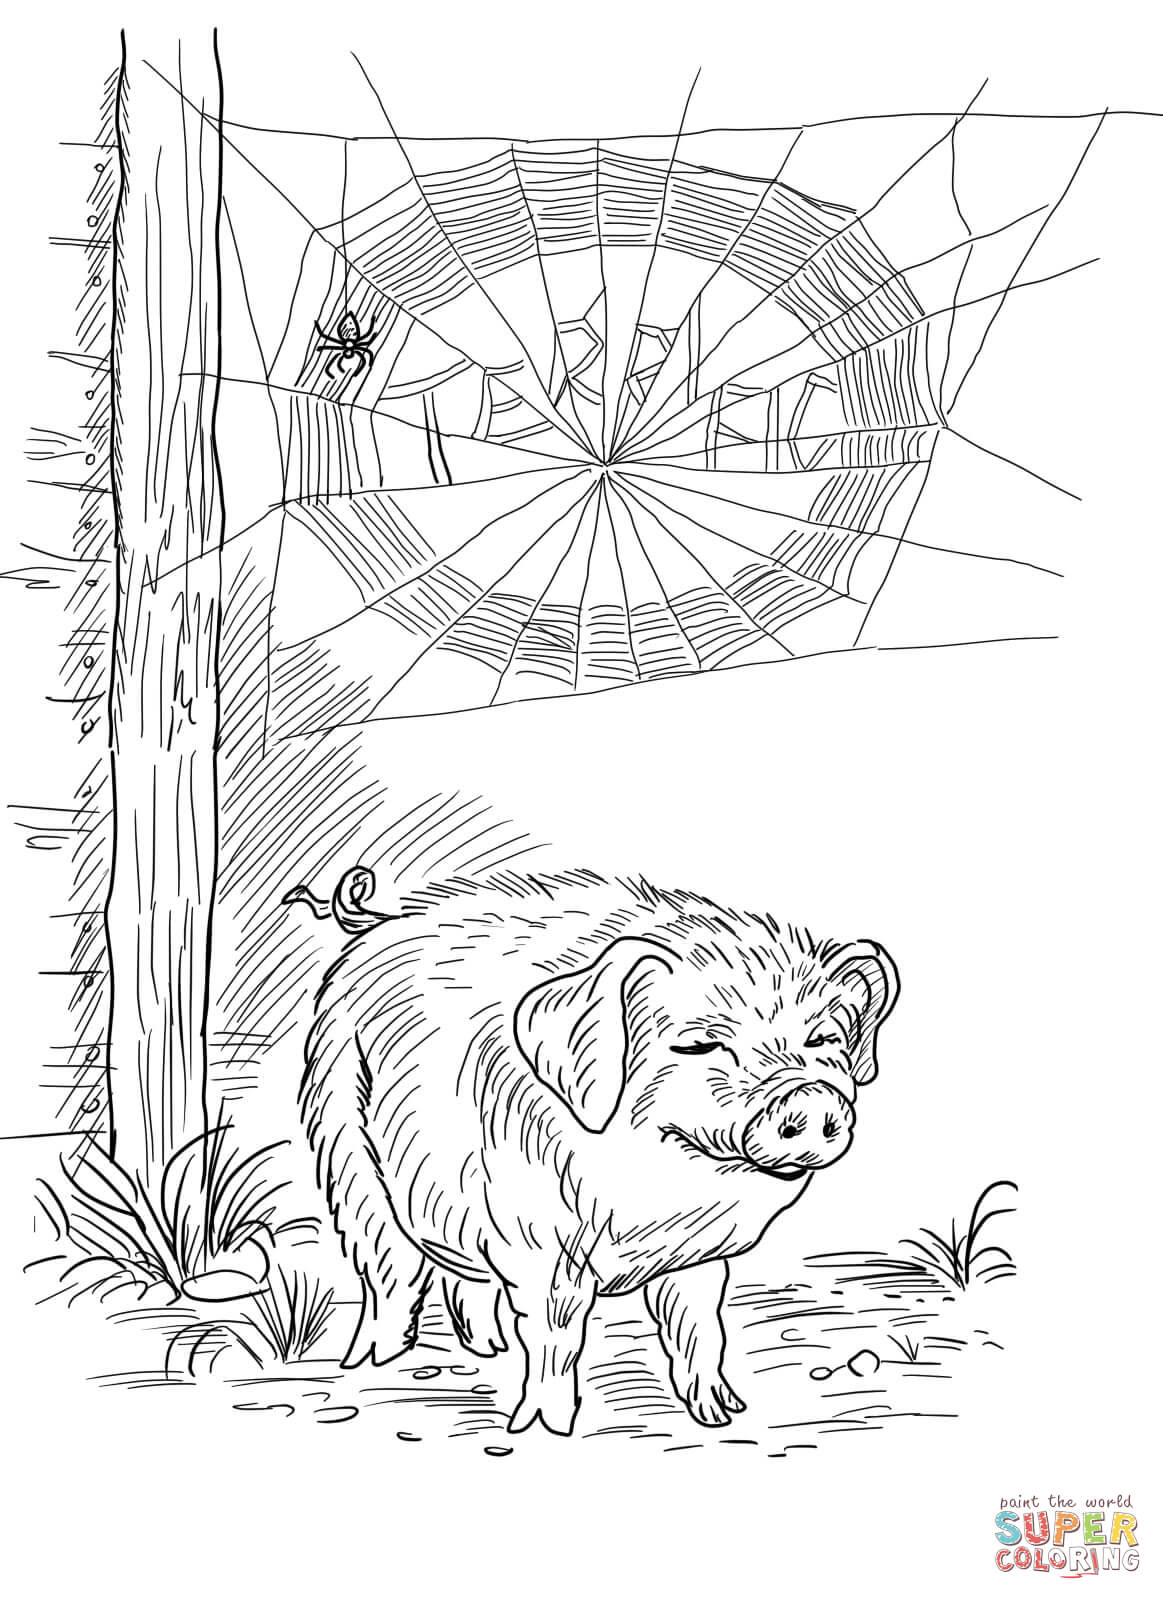 coloring page websites spider39s web coloring sheet topcoloringpagesnet page websites coloring